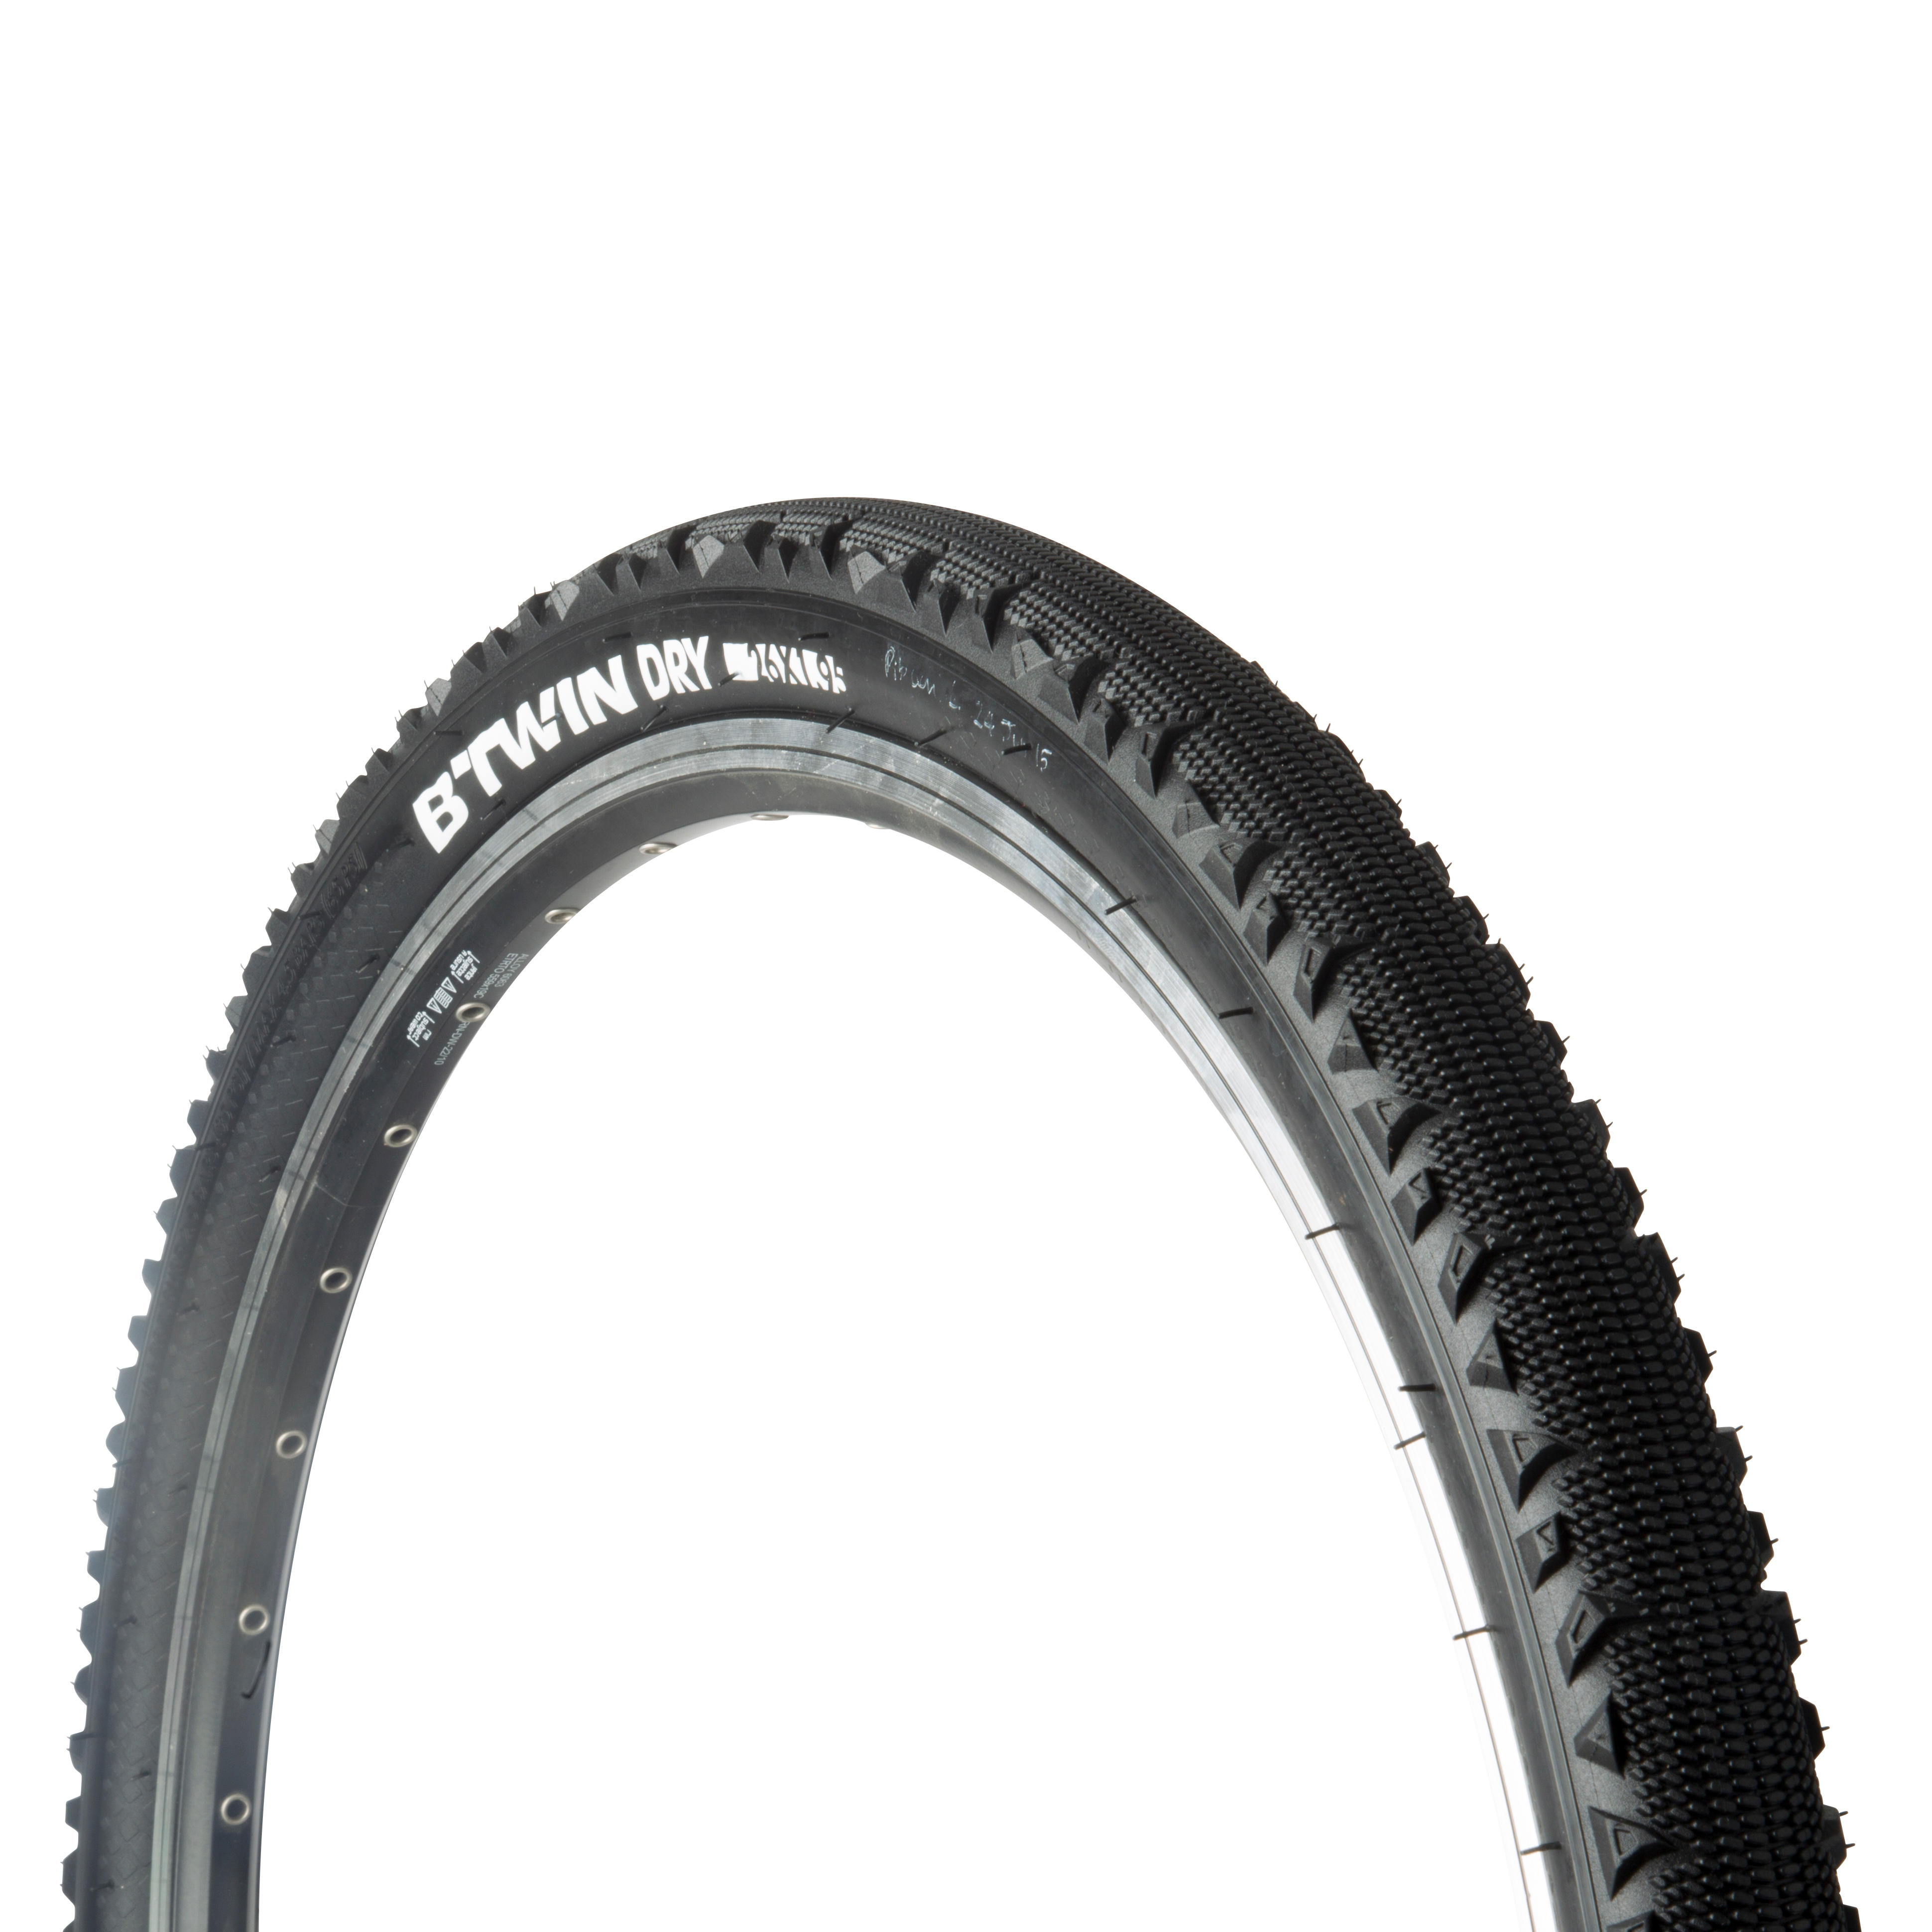 Cauciuc Trekking1 Speed26x1,95